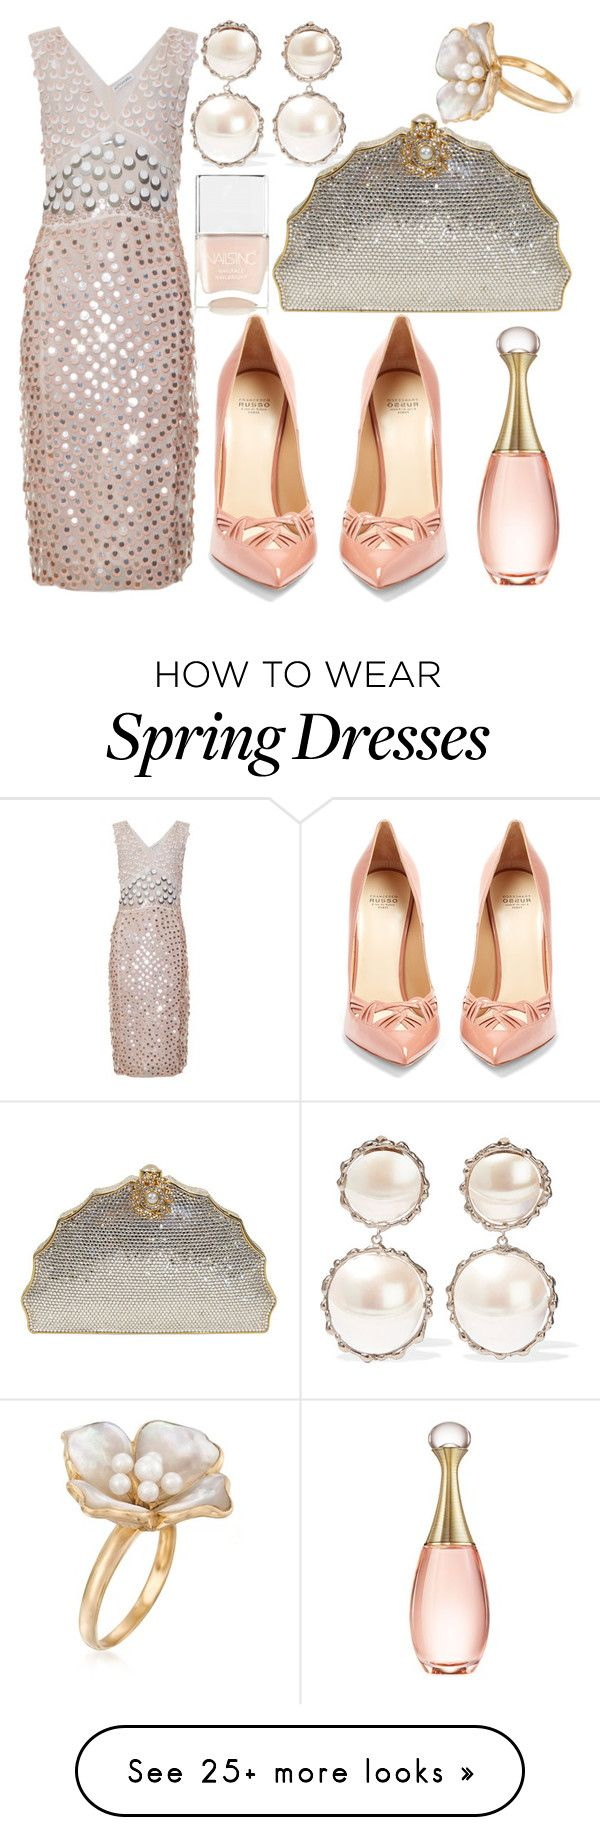 """Opalescent"" by fashionforwarded on Polyvore featuring Rosantica, Altuzarra, Judith Leiber, Francesco Russo, Christian Dior, Nails Inc., Ross-Simons and dreamydresses"